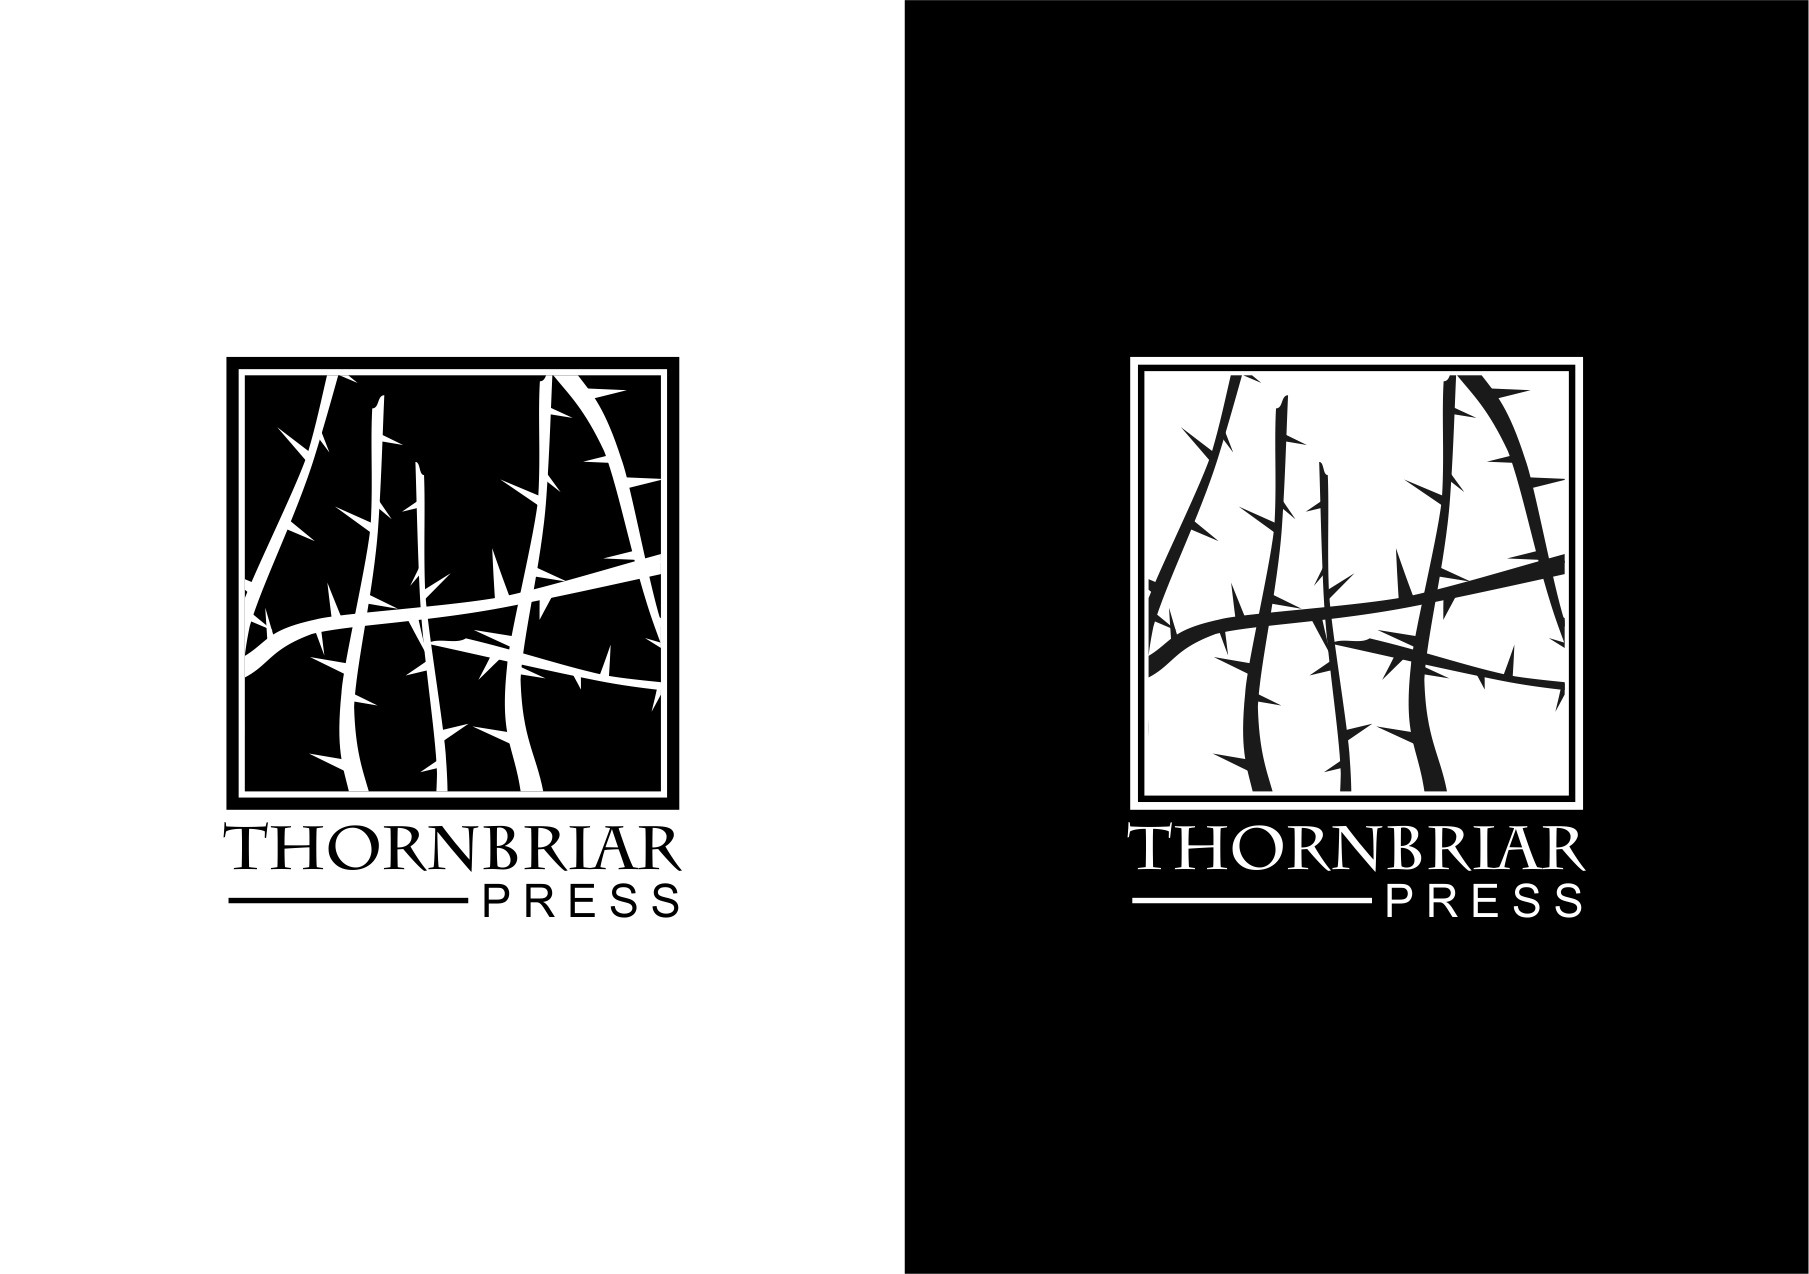 Help Thornbriar Press with a new logo